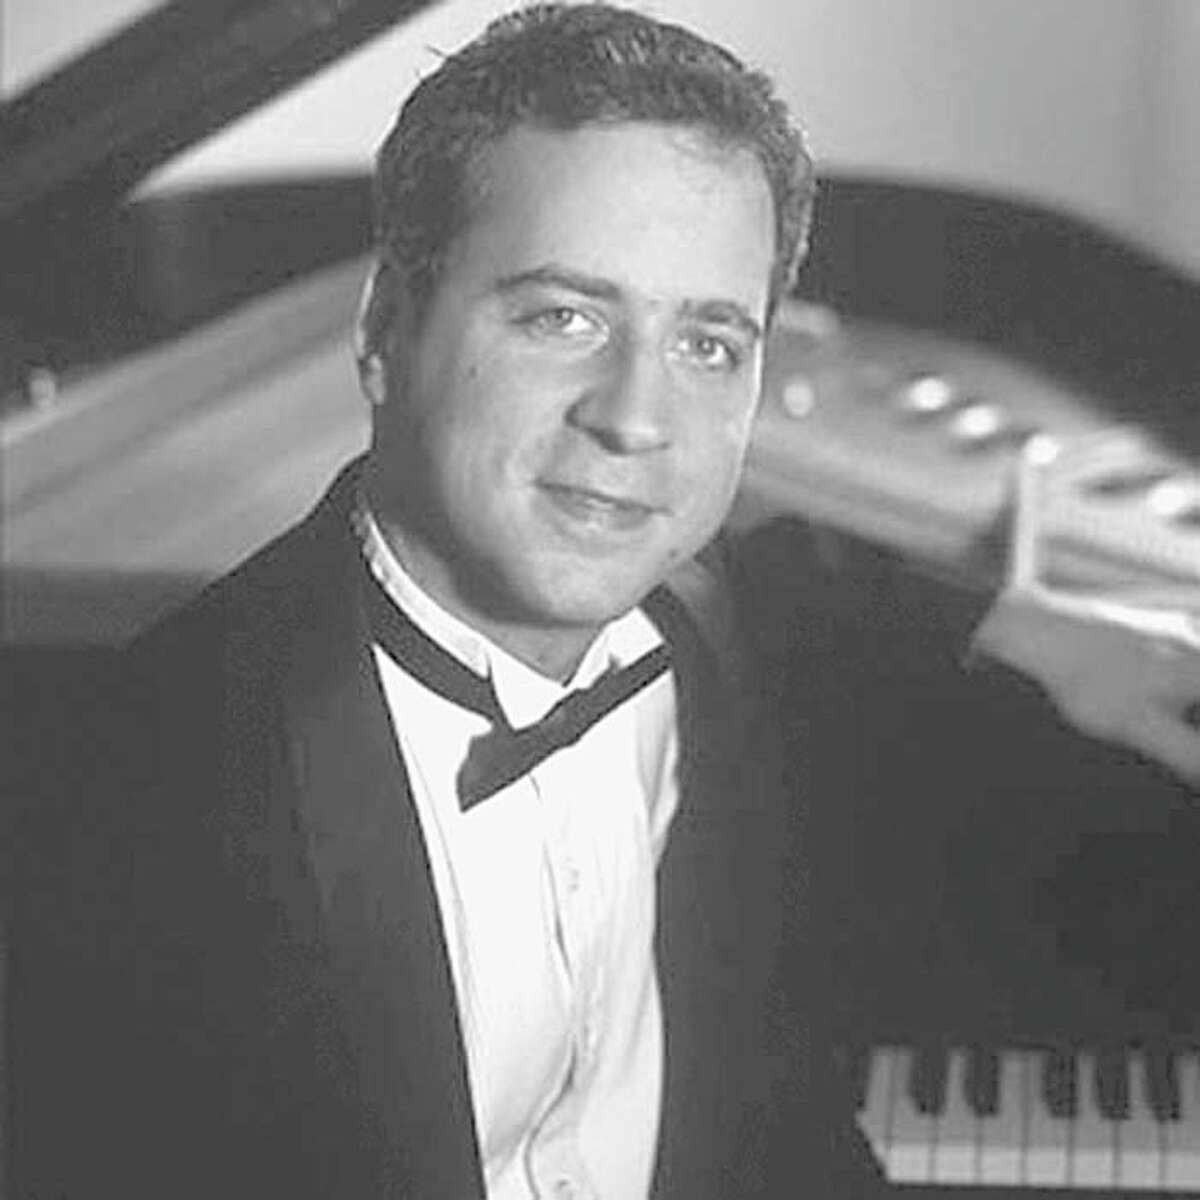 CONCERT PIANIST Jeremy Denk says he wishes humor was more accepted in concert venues.